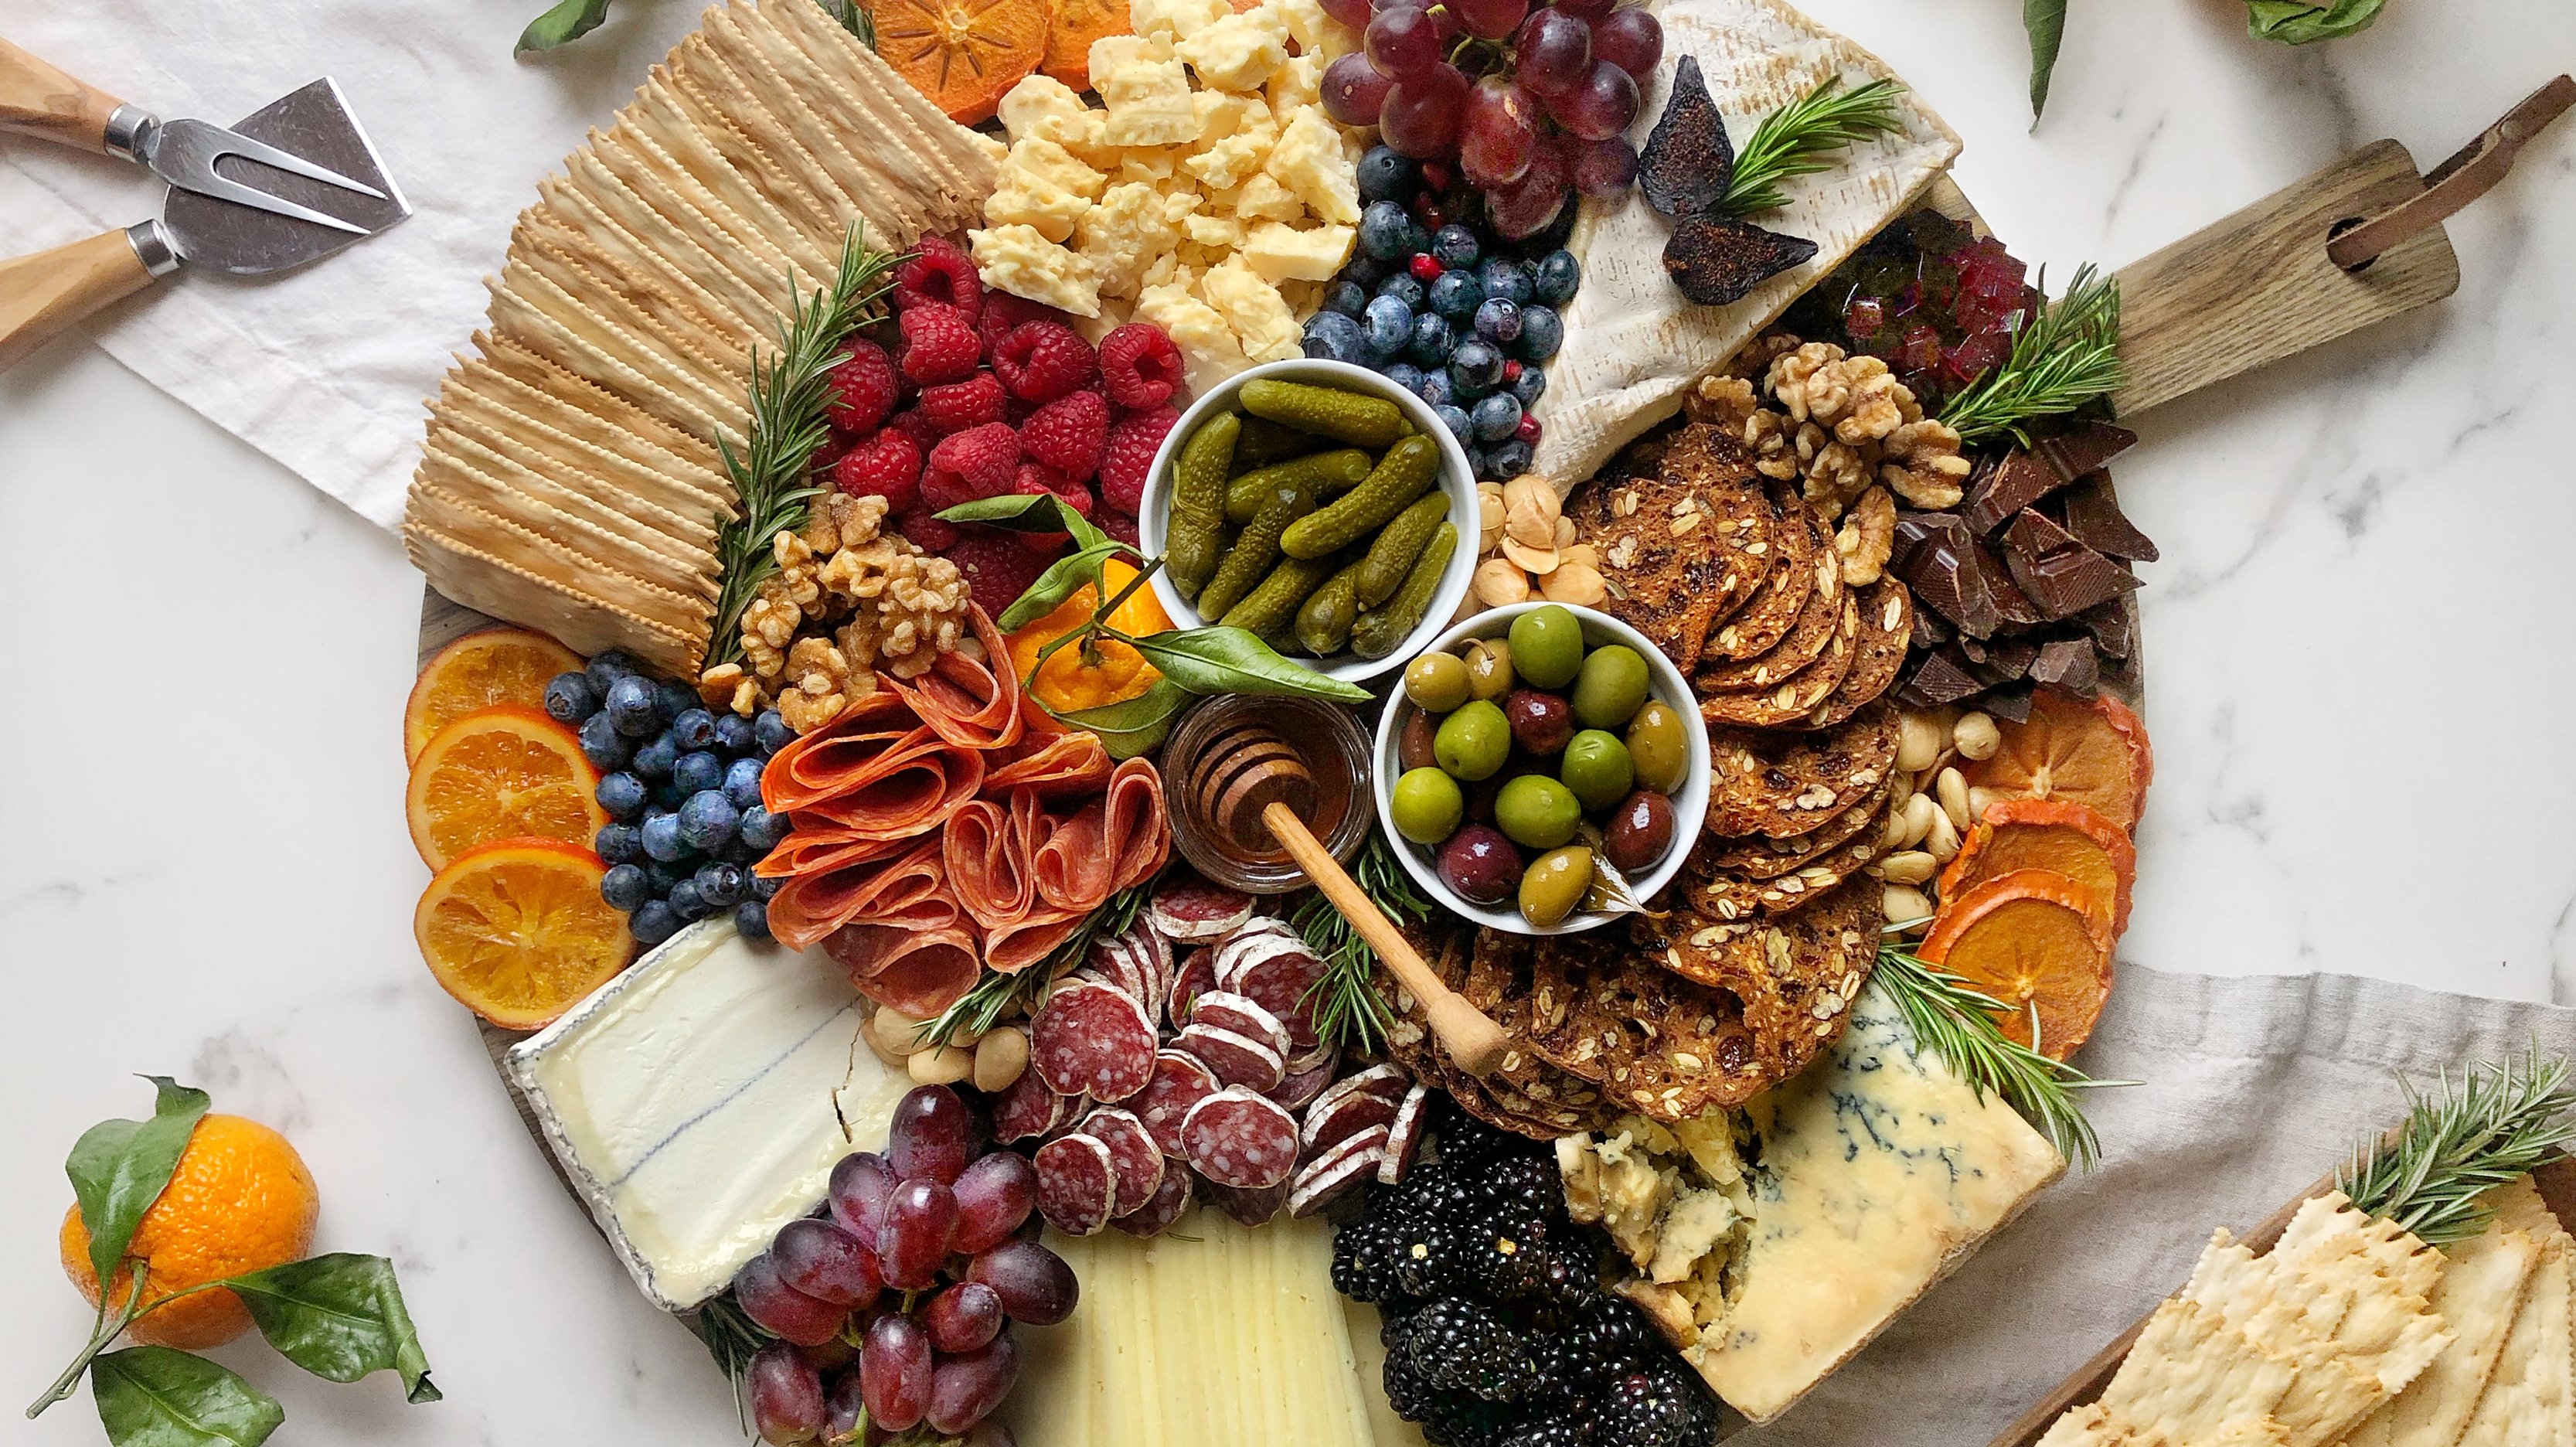 Cheese Board Ideas How To Make Yours Instagram Worthy Cnn Underscored